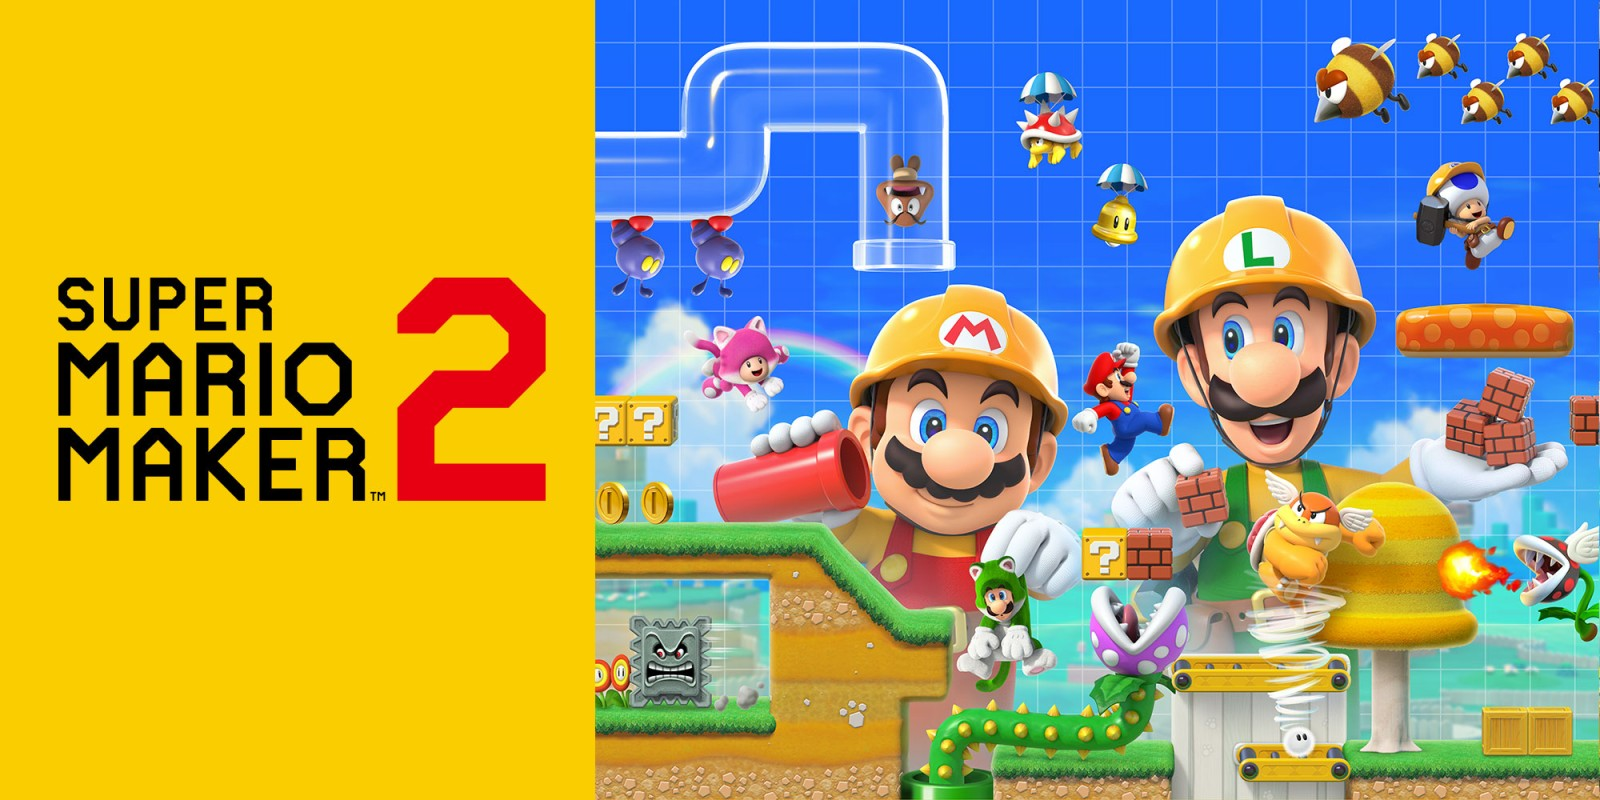 dd8602aa36 Super Mario Maker 2 | Nintendo Switch | Games | Nintendo